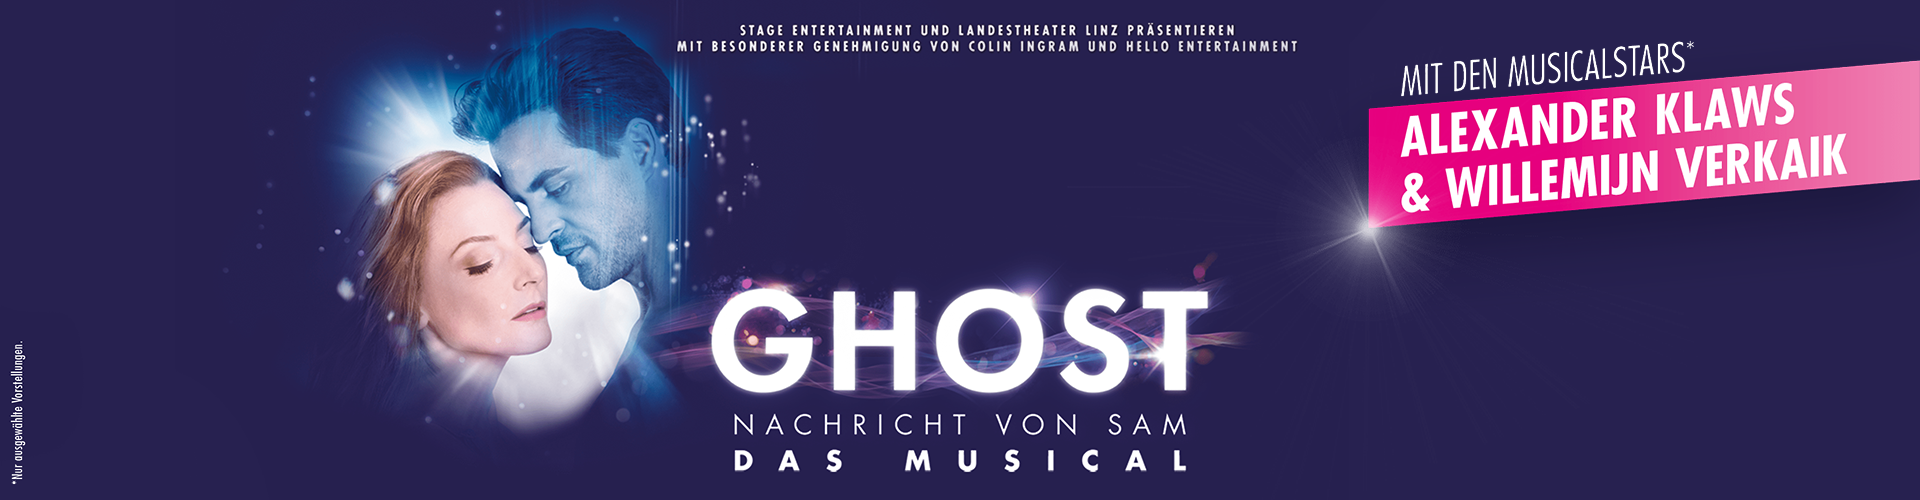 GHOST – DAS MUSICAL